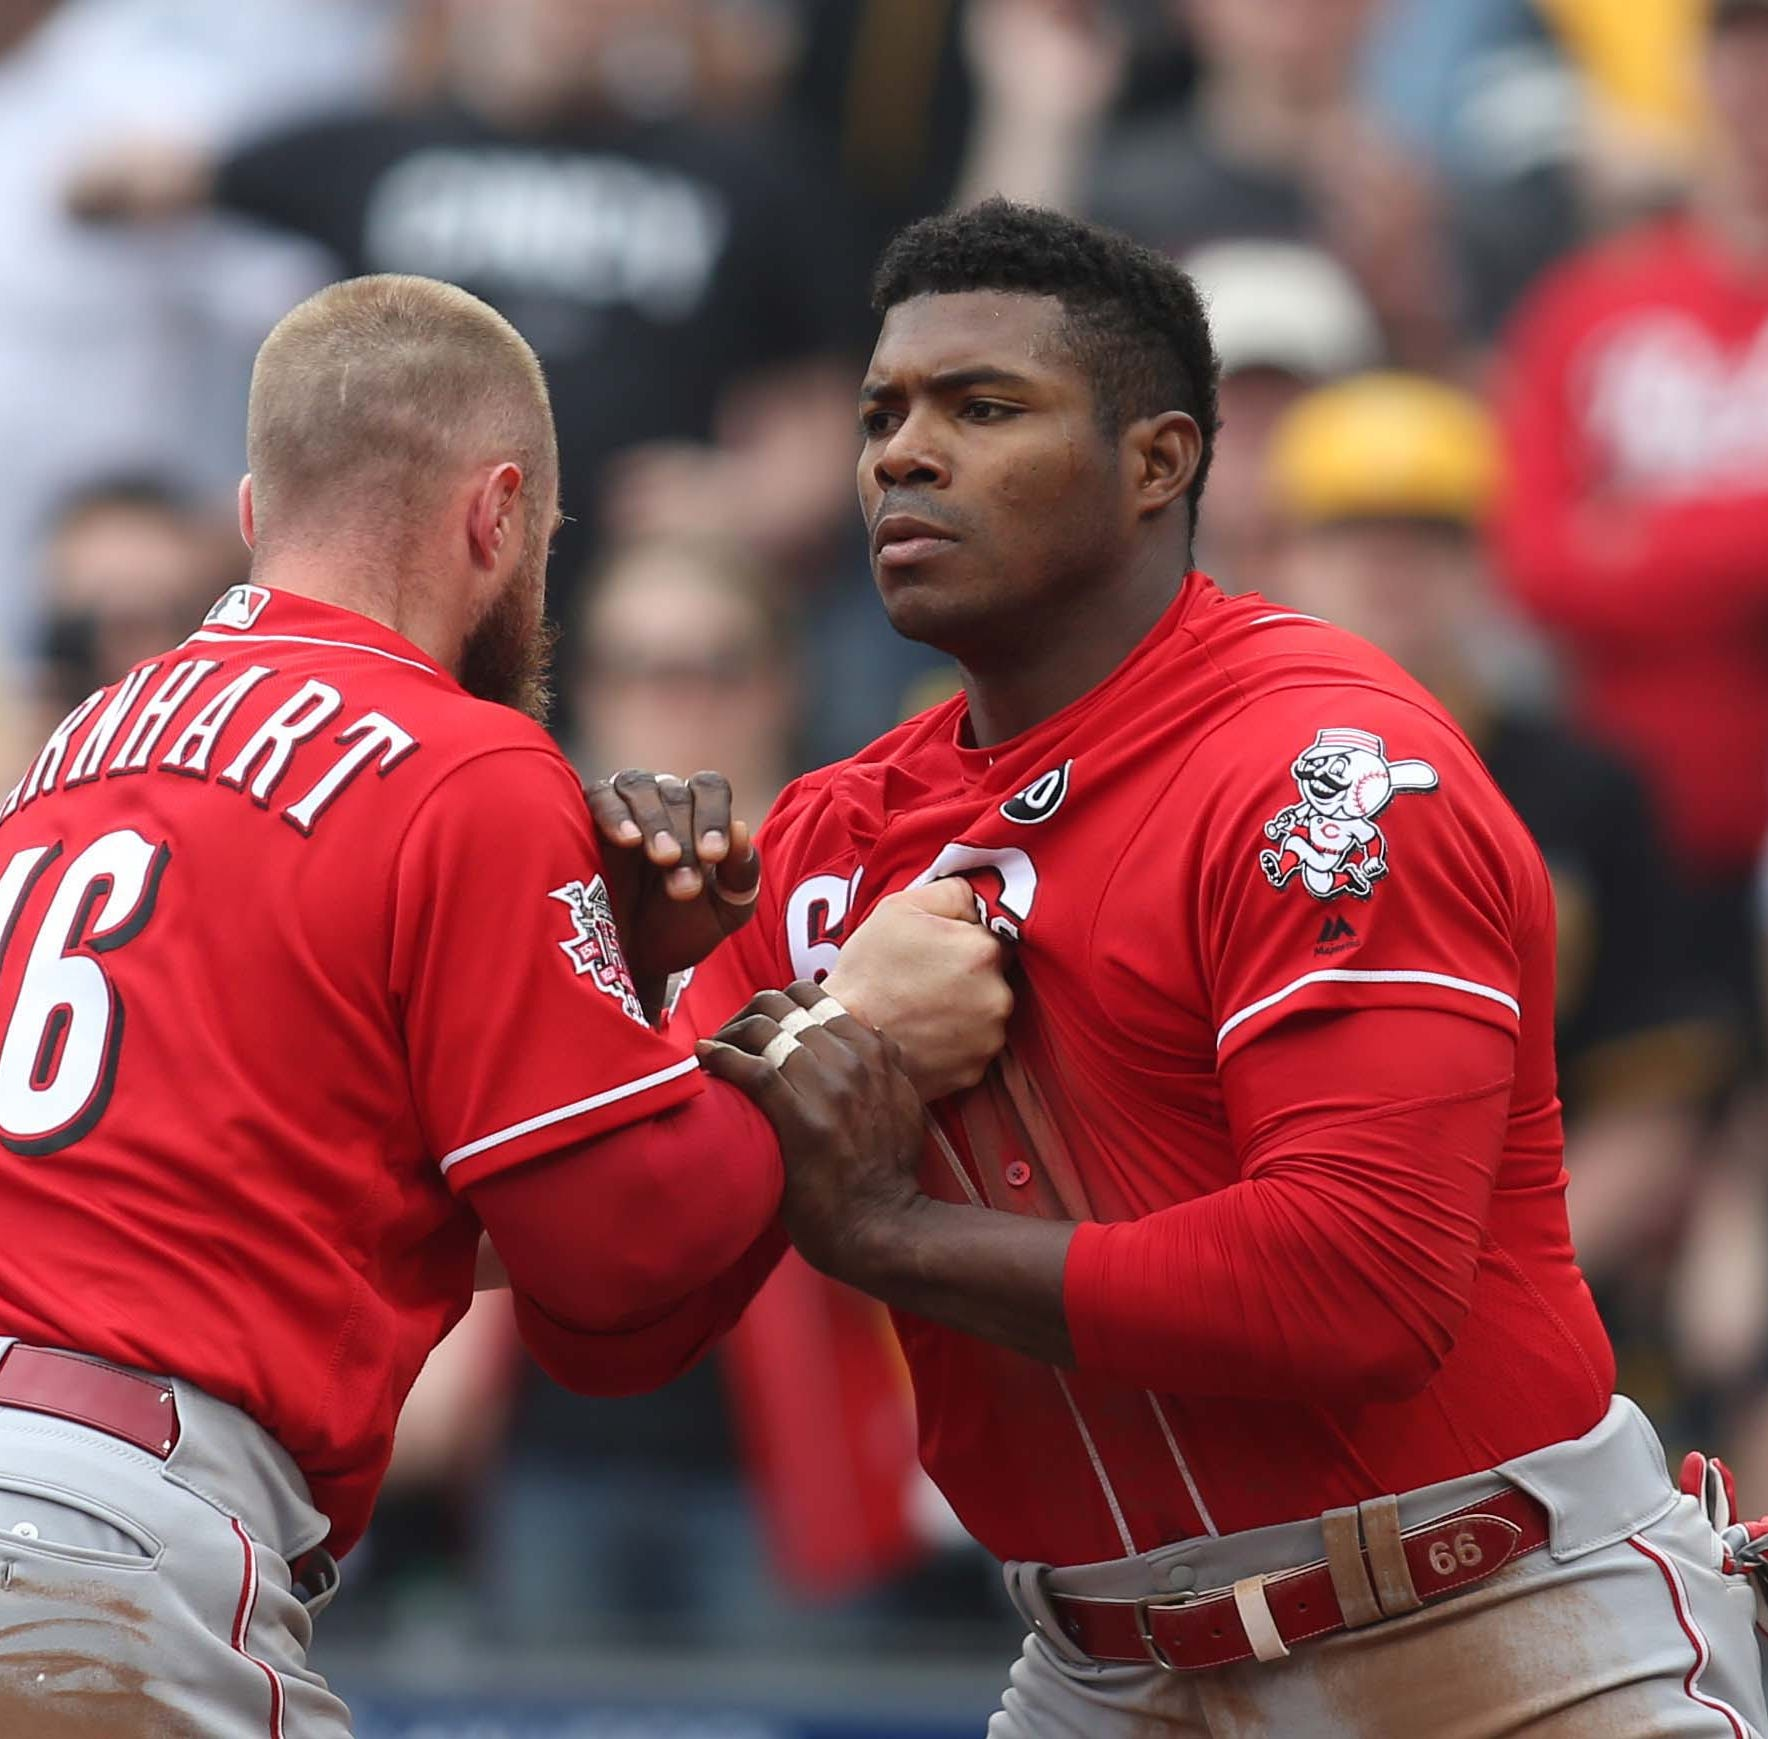 Cincinnati Reds lose 8th straight game in a fiery series finale to Pittsburgh Pirates